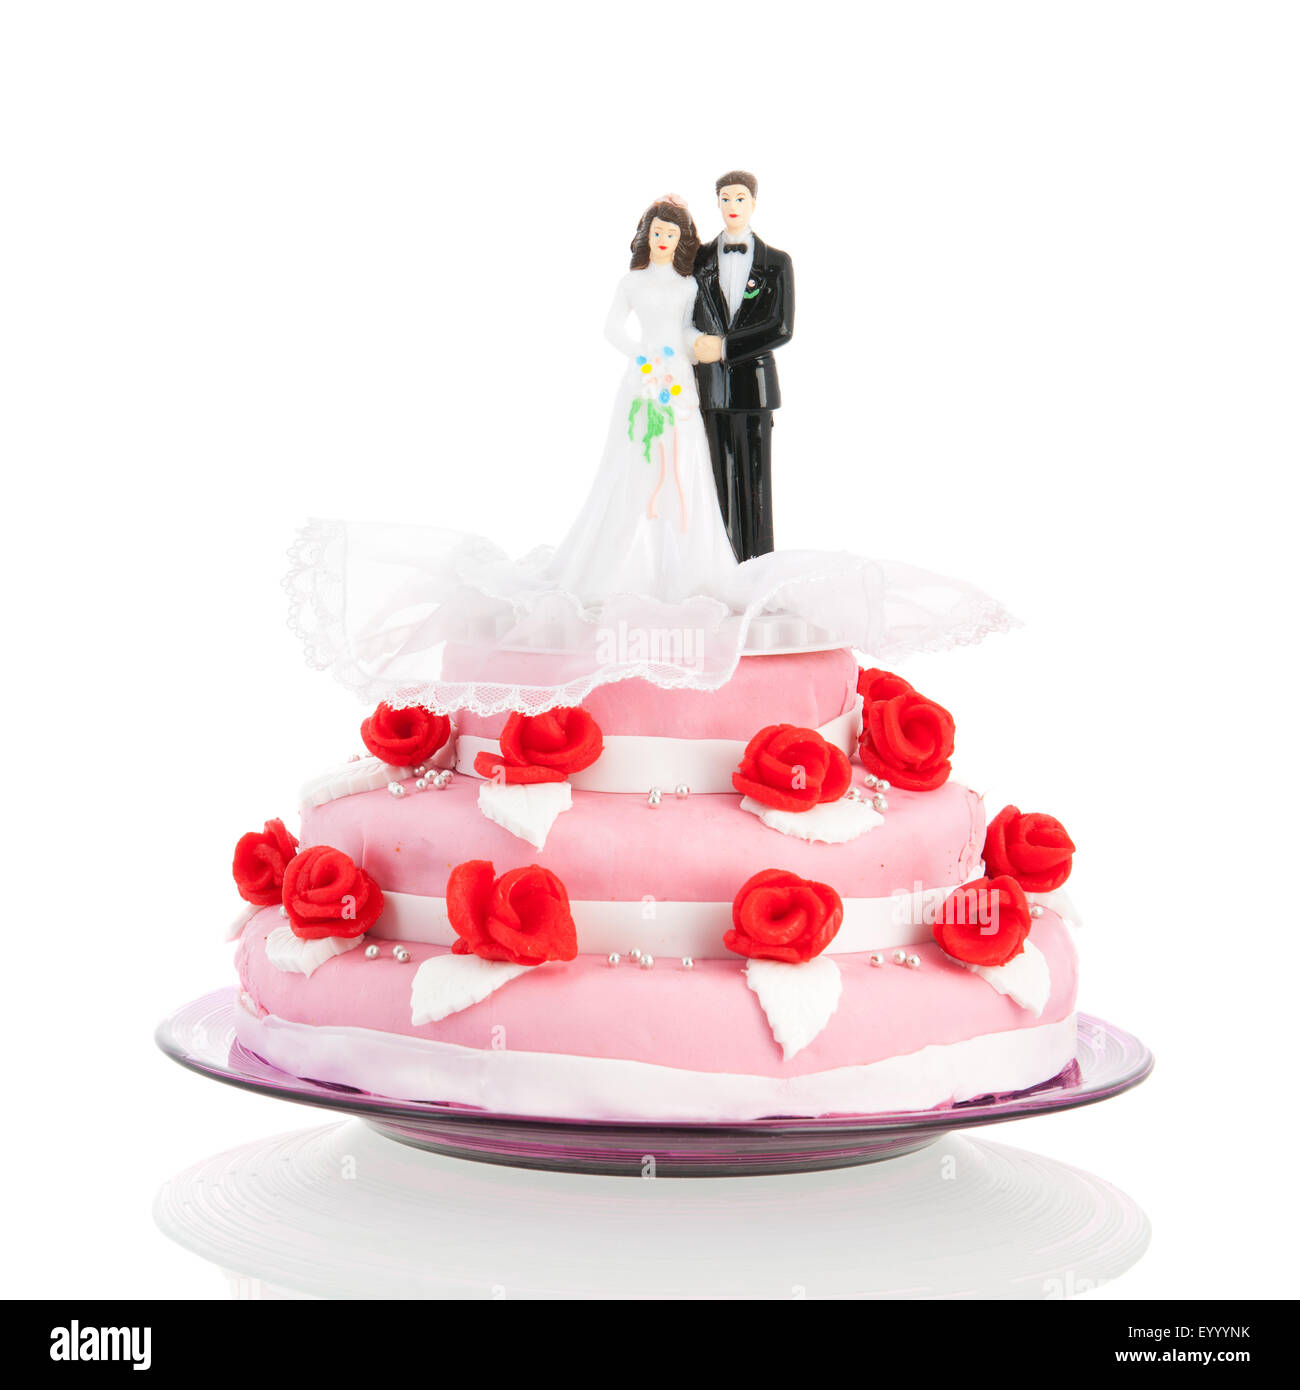 Pink wedding cake with red roses and couple on top Stock Photo ...